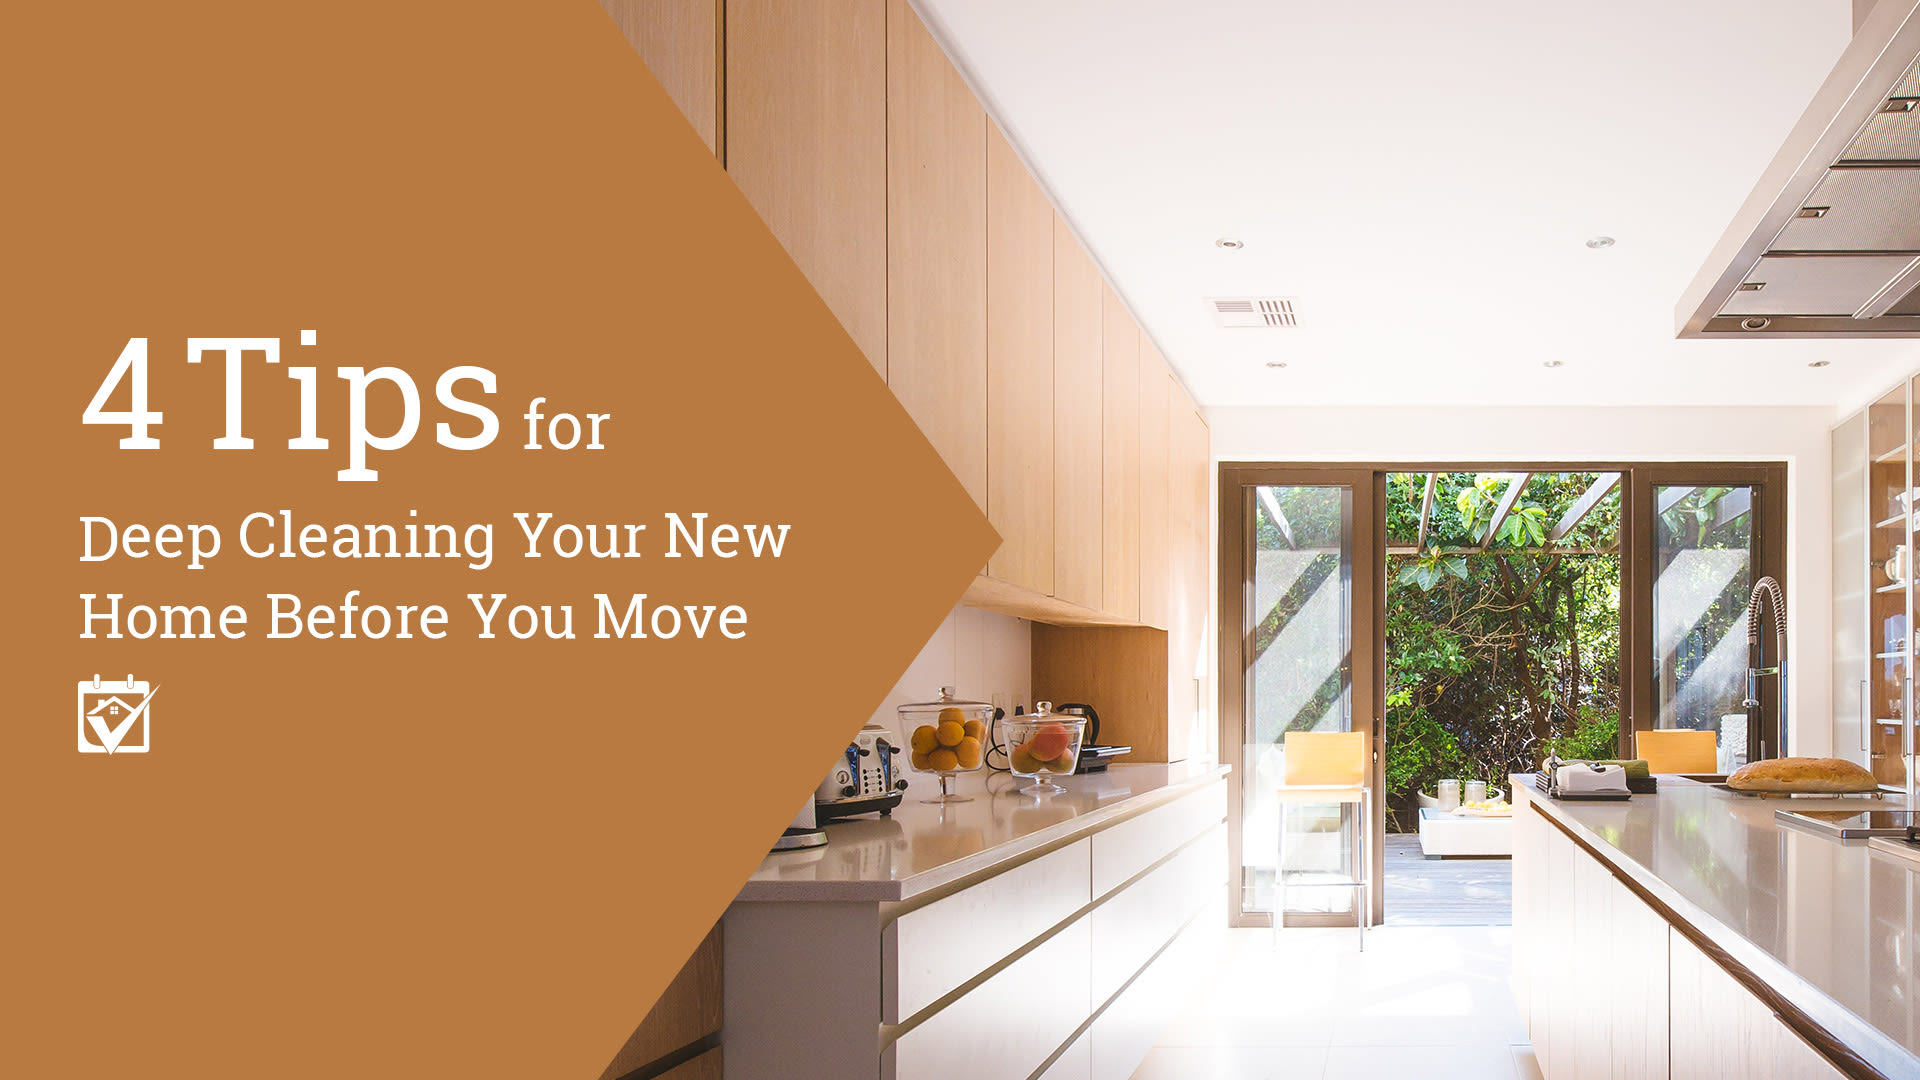 4 Tips for Deep Cleaning Your New Home Before You Move